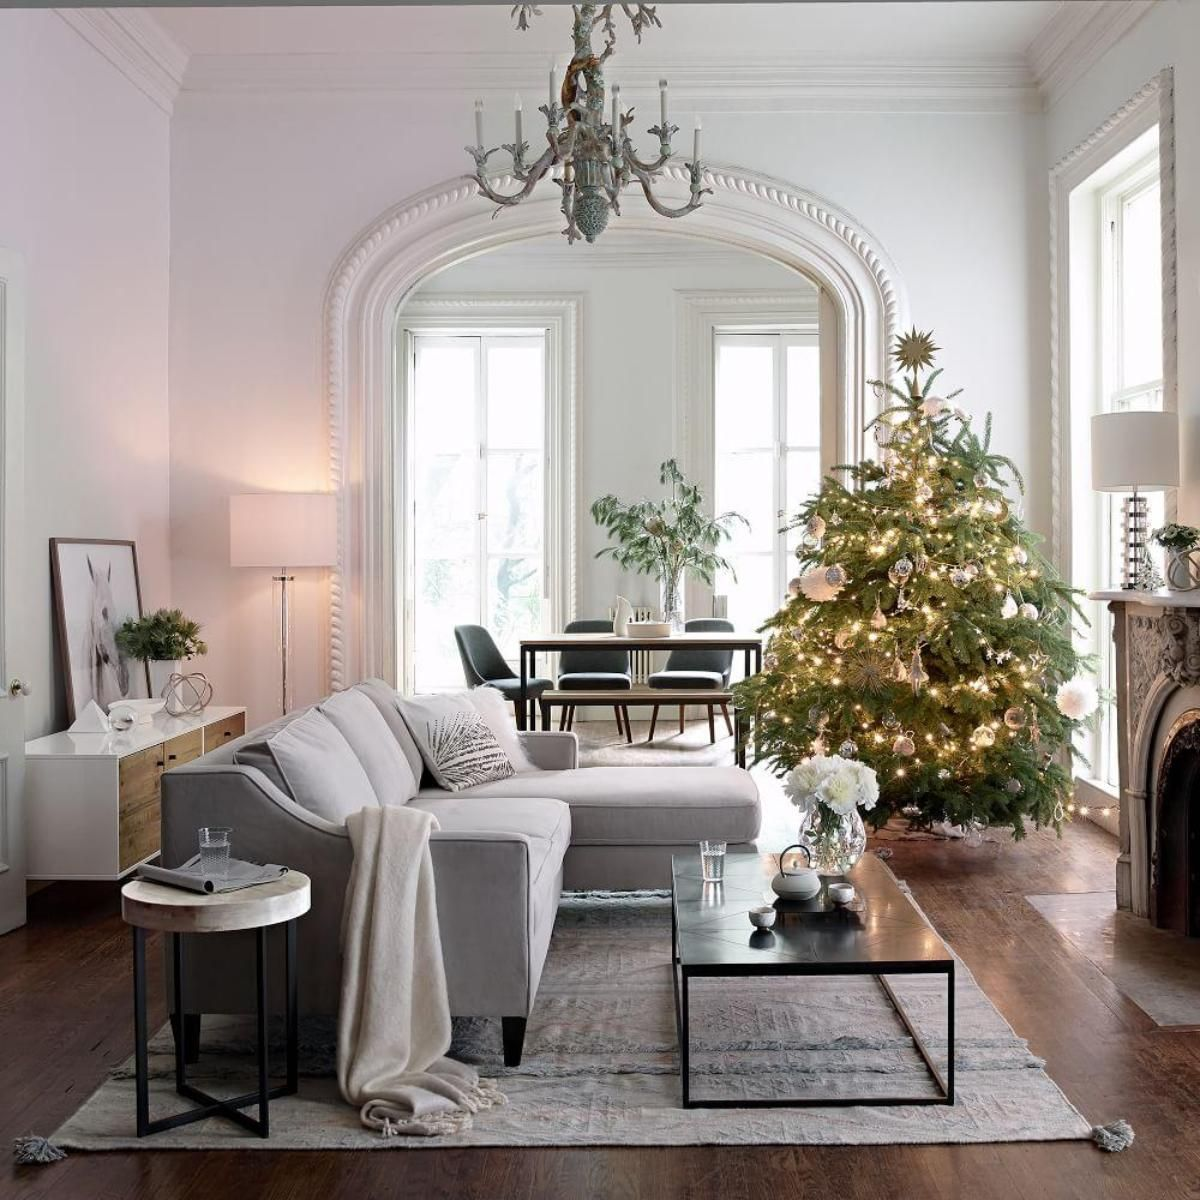 Home Decor Inspiration On Instagram How S The Christmas: Decorating: Living Spaces